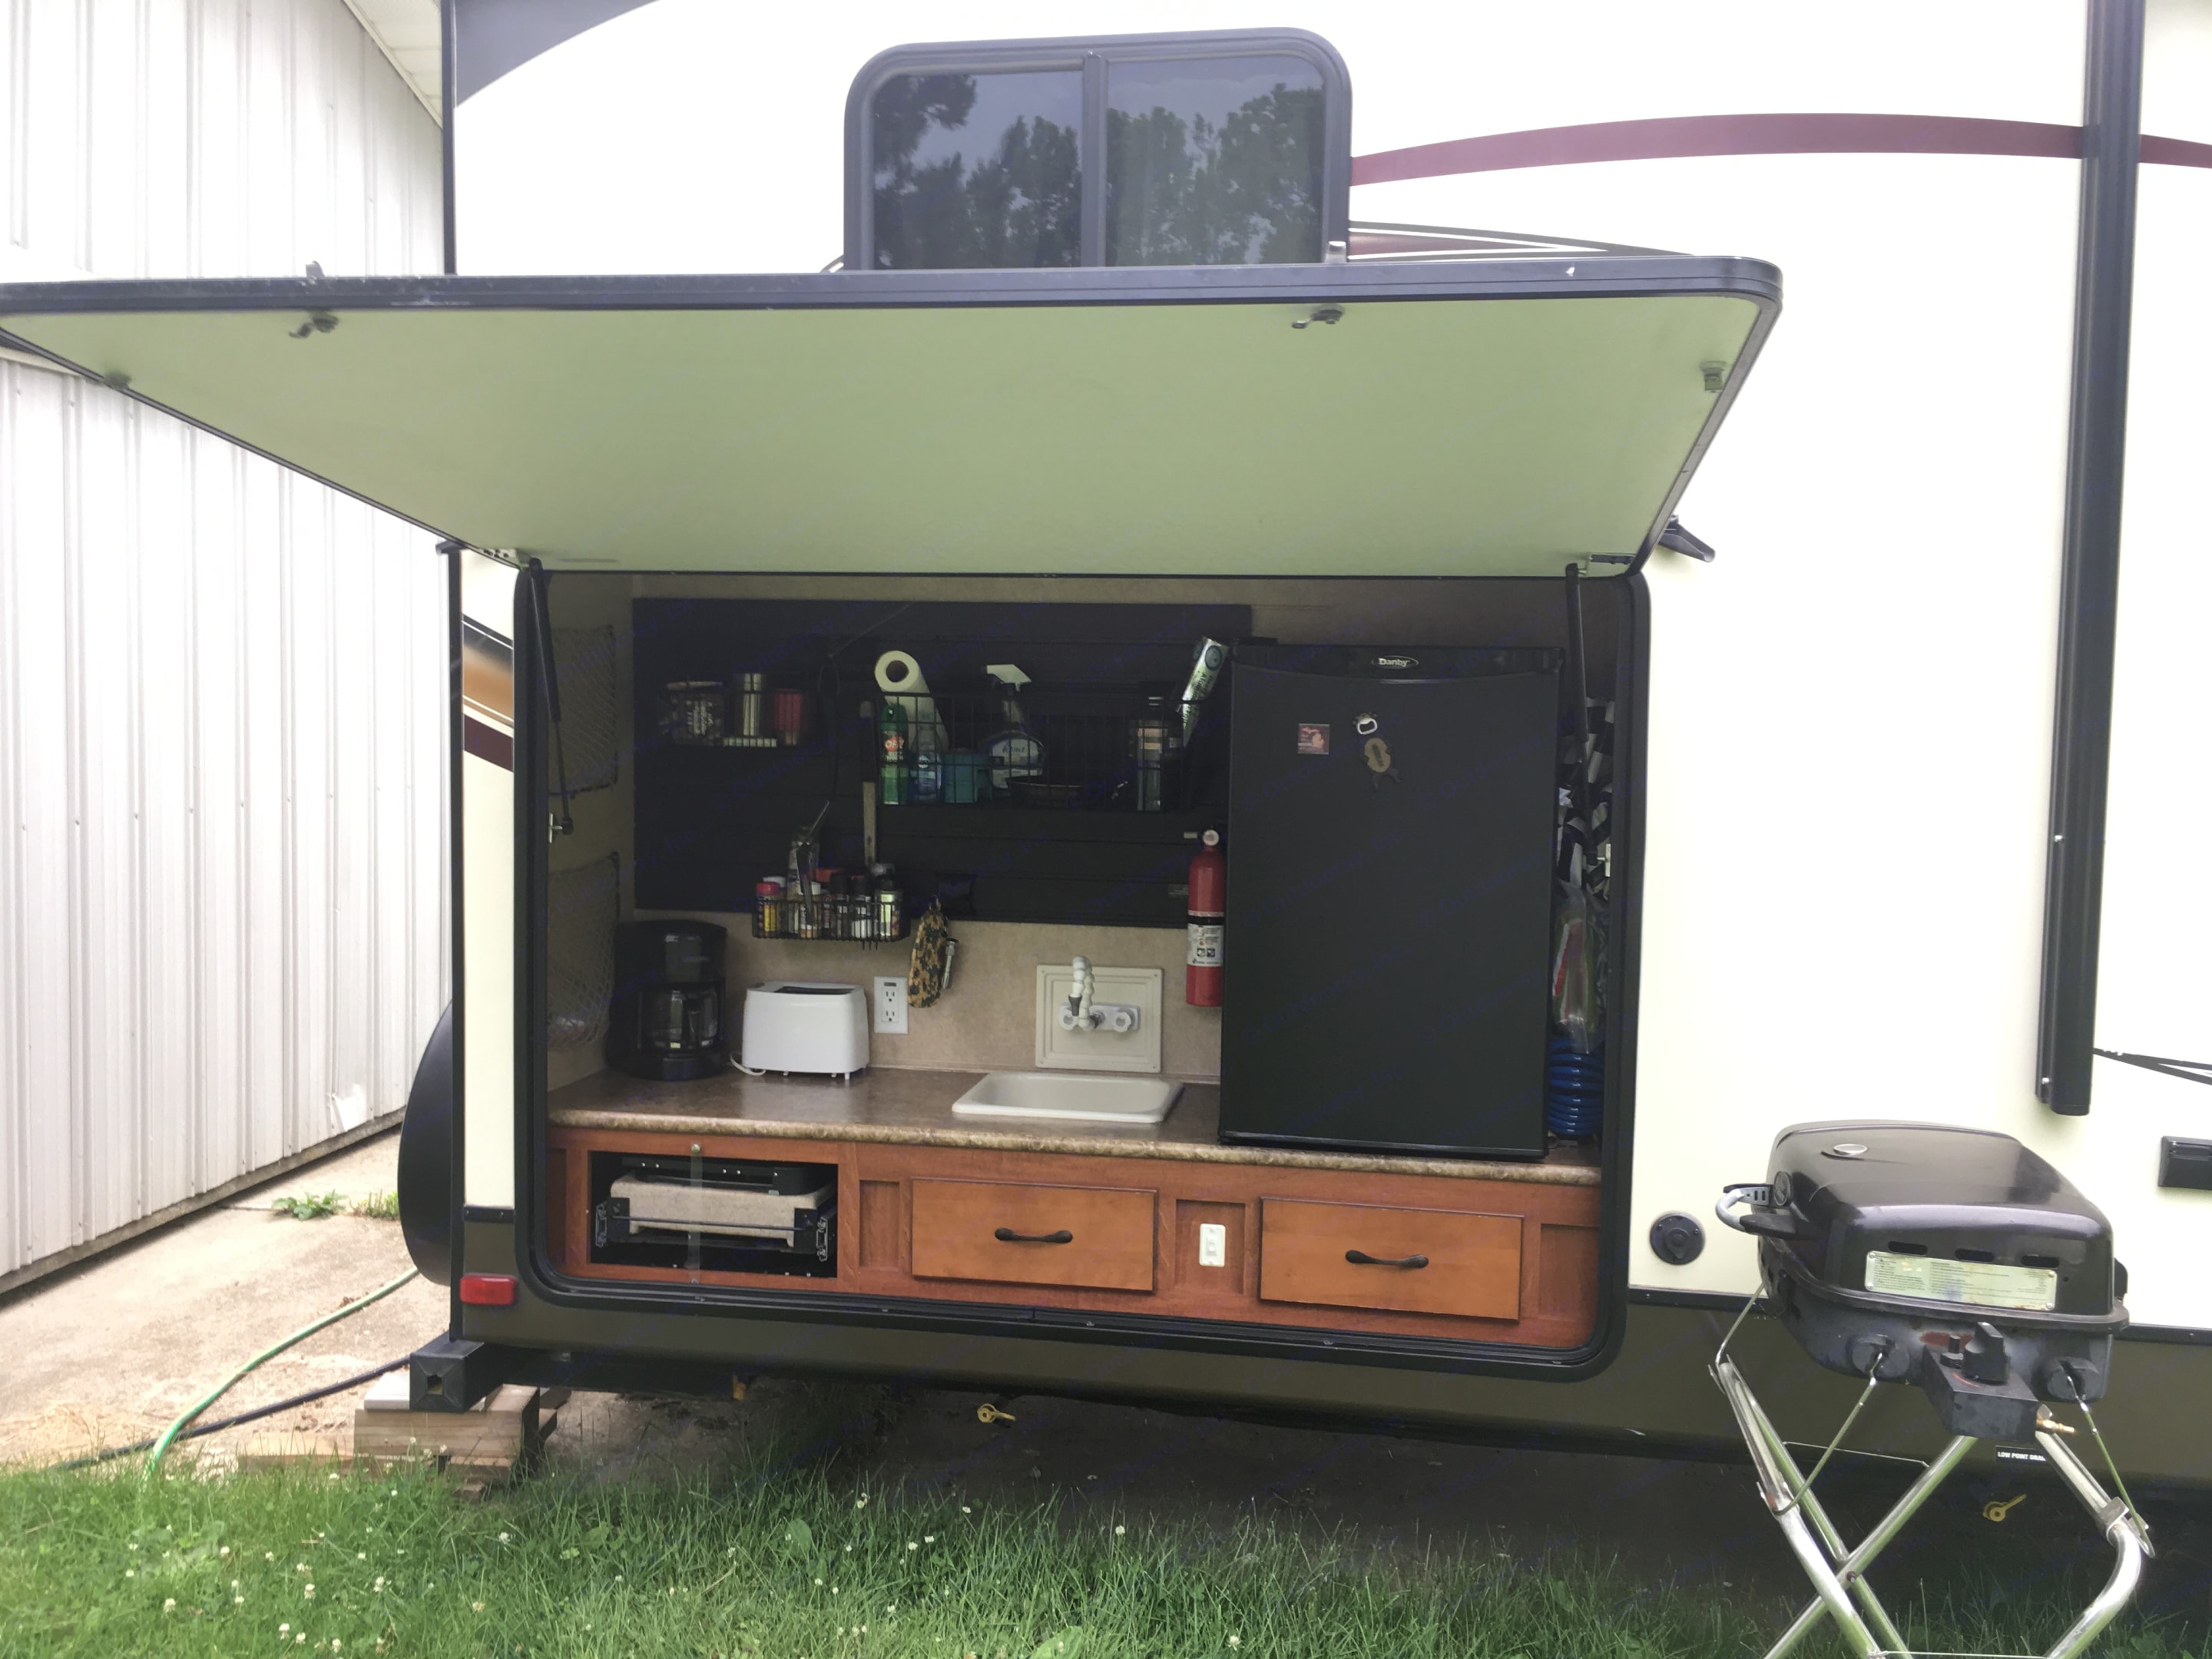 The full size outdoor kitchen has a fridge, sink, cook-top stove, coffeepot, toaster and optional BBQ-grill. . Forest River Surveyor select 10th anniversary edition 2012